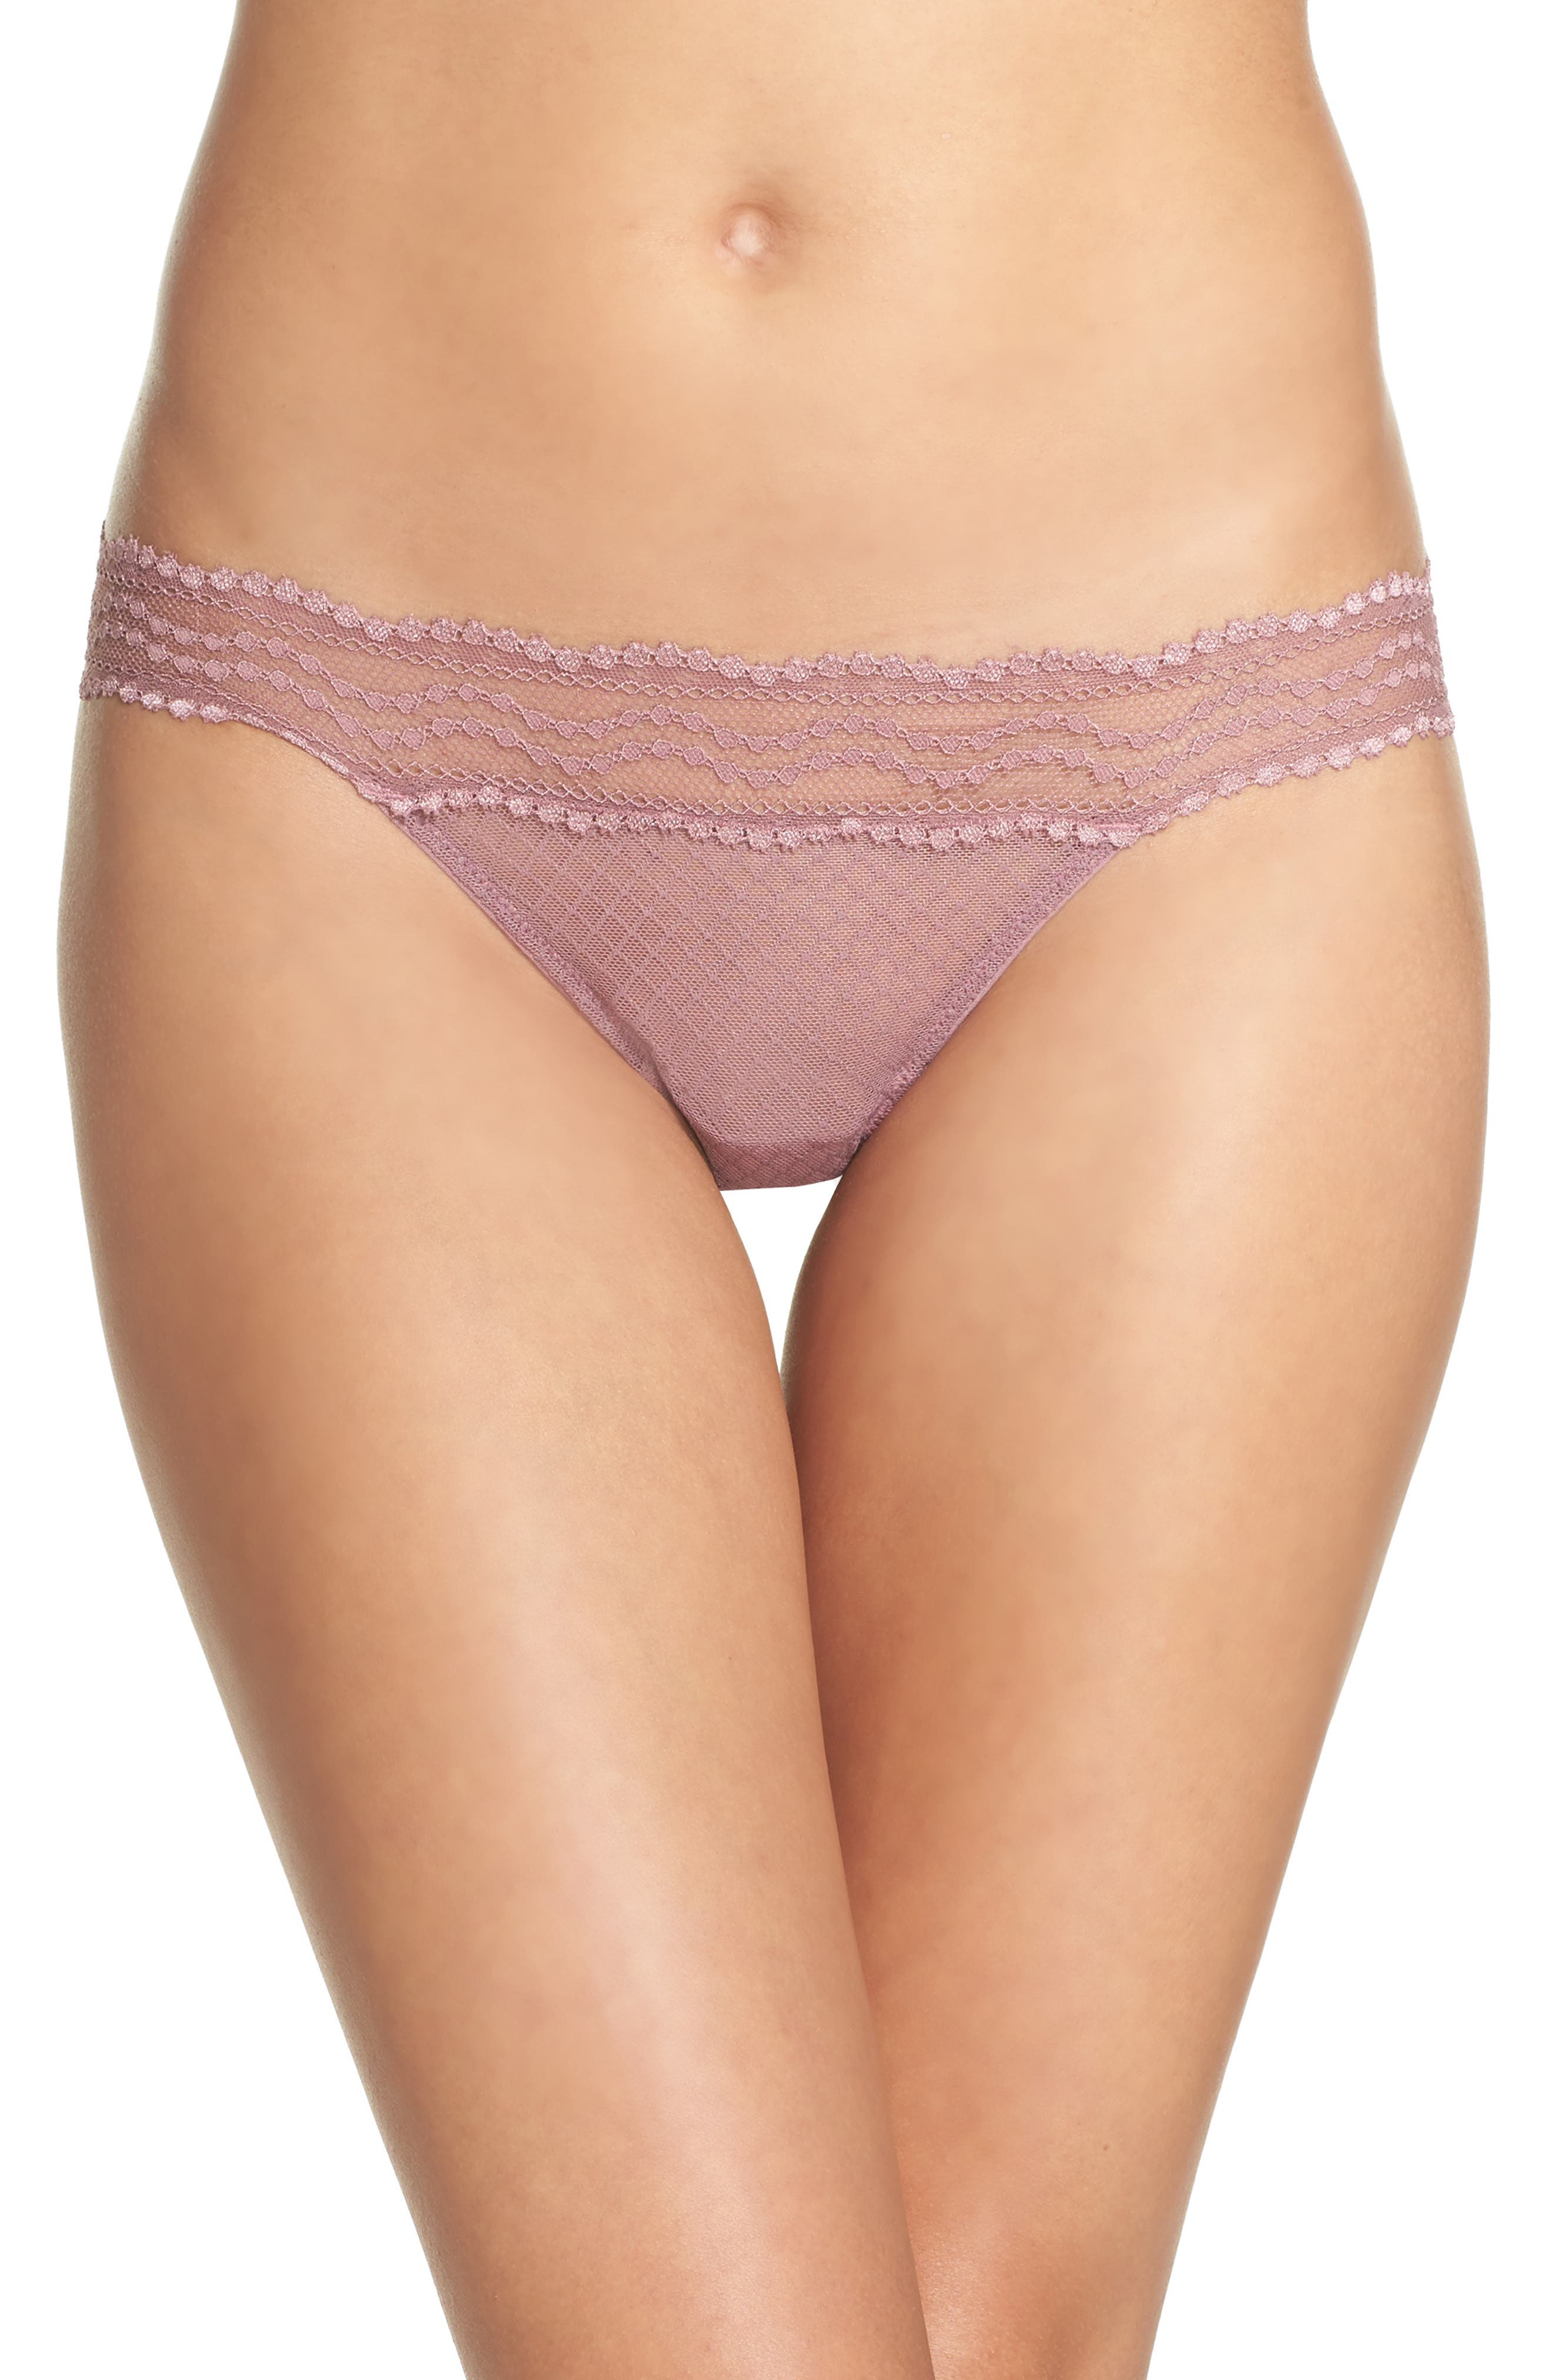 Vince Camuto Colette Thong (3 for $33)